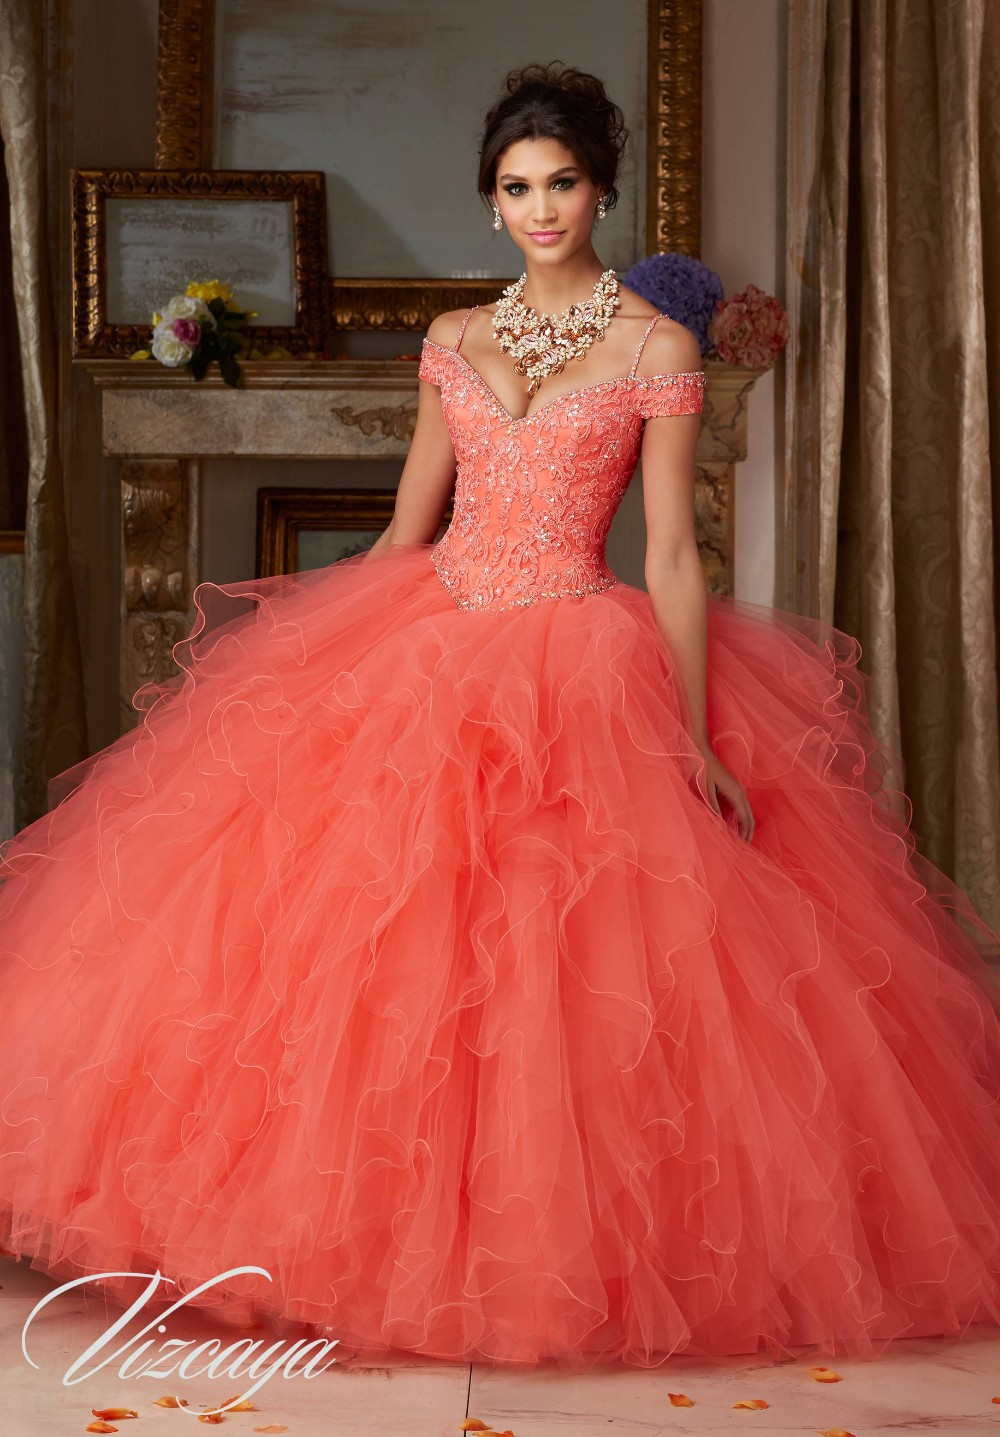 cc6c469243a Organza Lace Beaded Spaghetti Strap Coral Cinderella Ball Gown Quinceanera  Dresses 2016 Sweet 15 Dresses Vestidos De Quinceanera-in Quinceanera Dresses  from ...